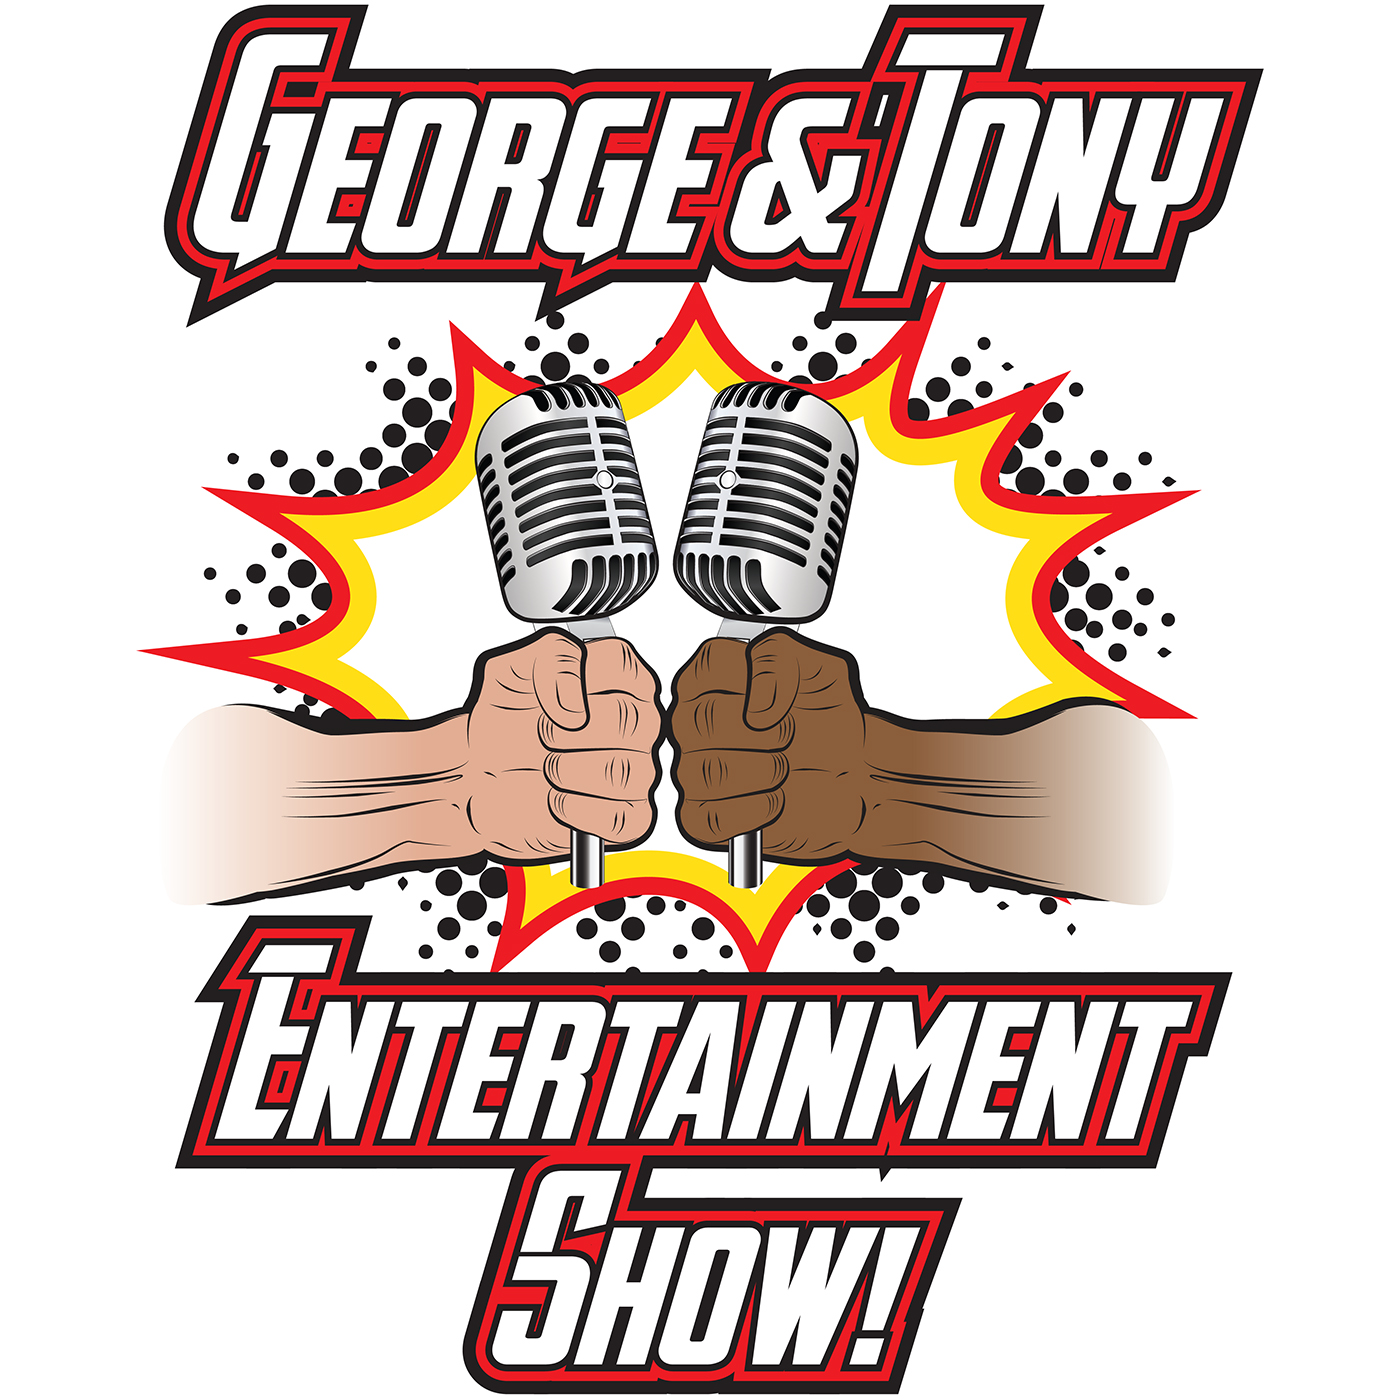 George and Tony Entertainment Show #8